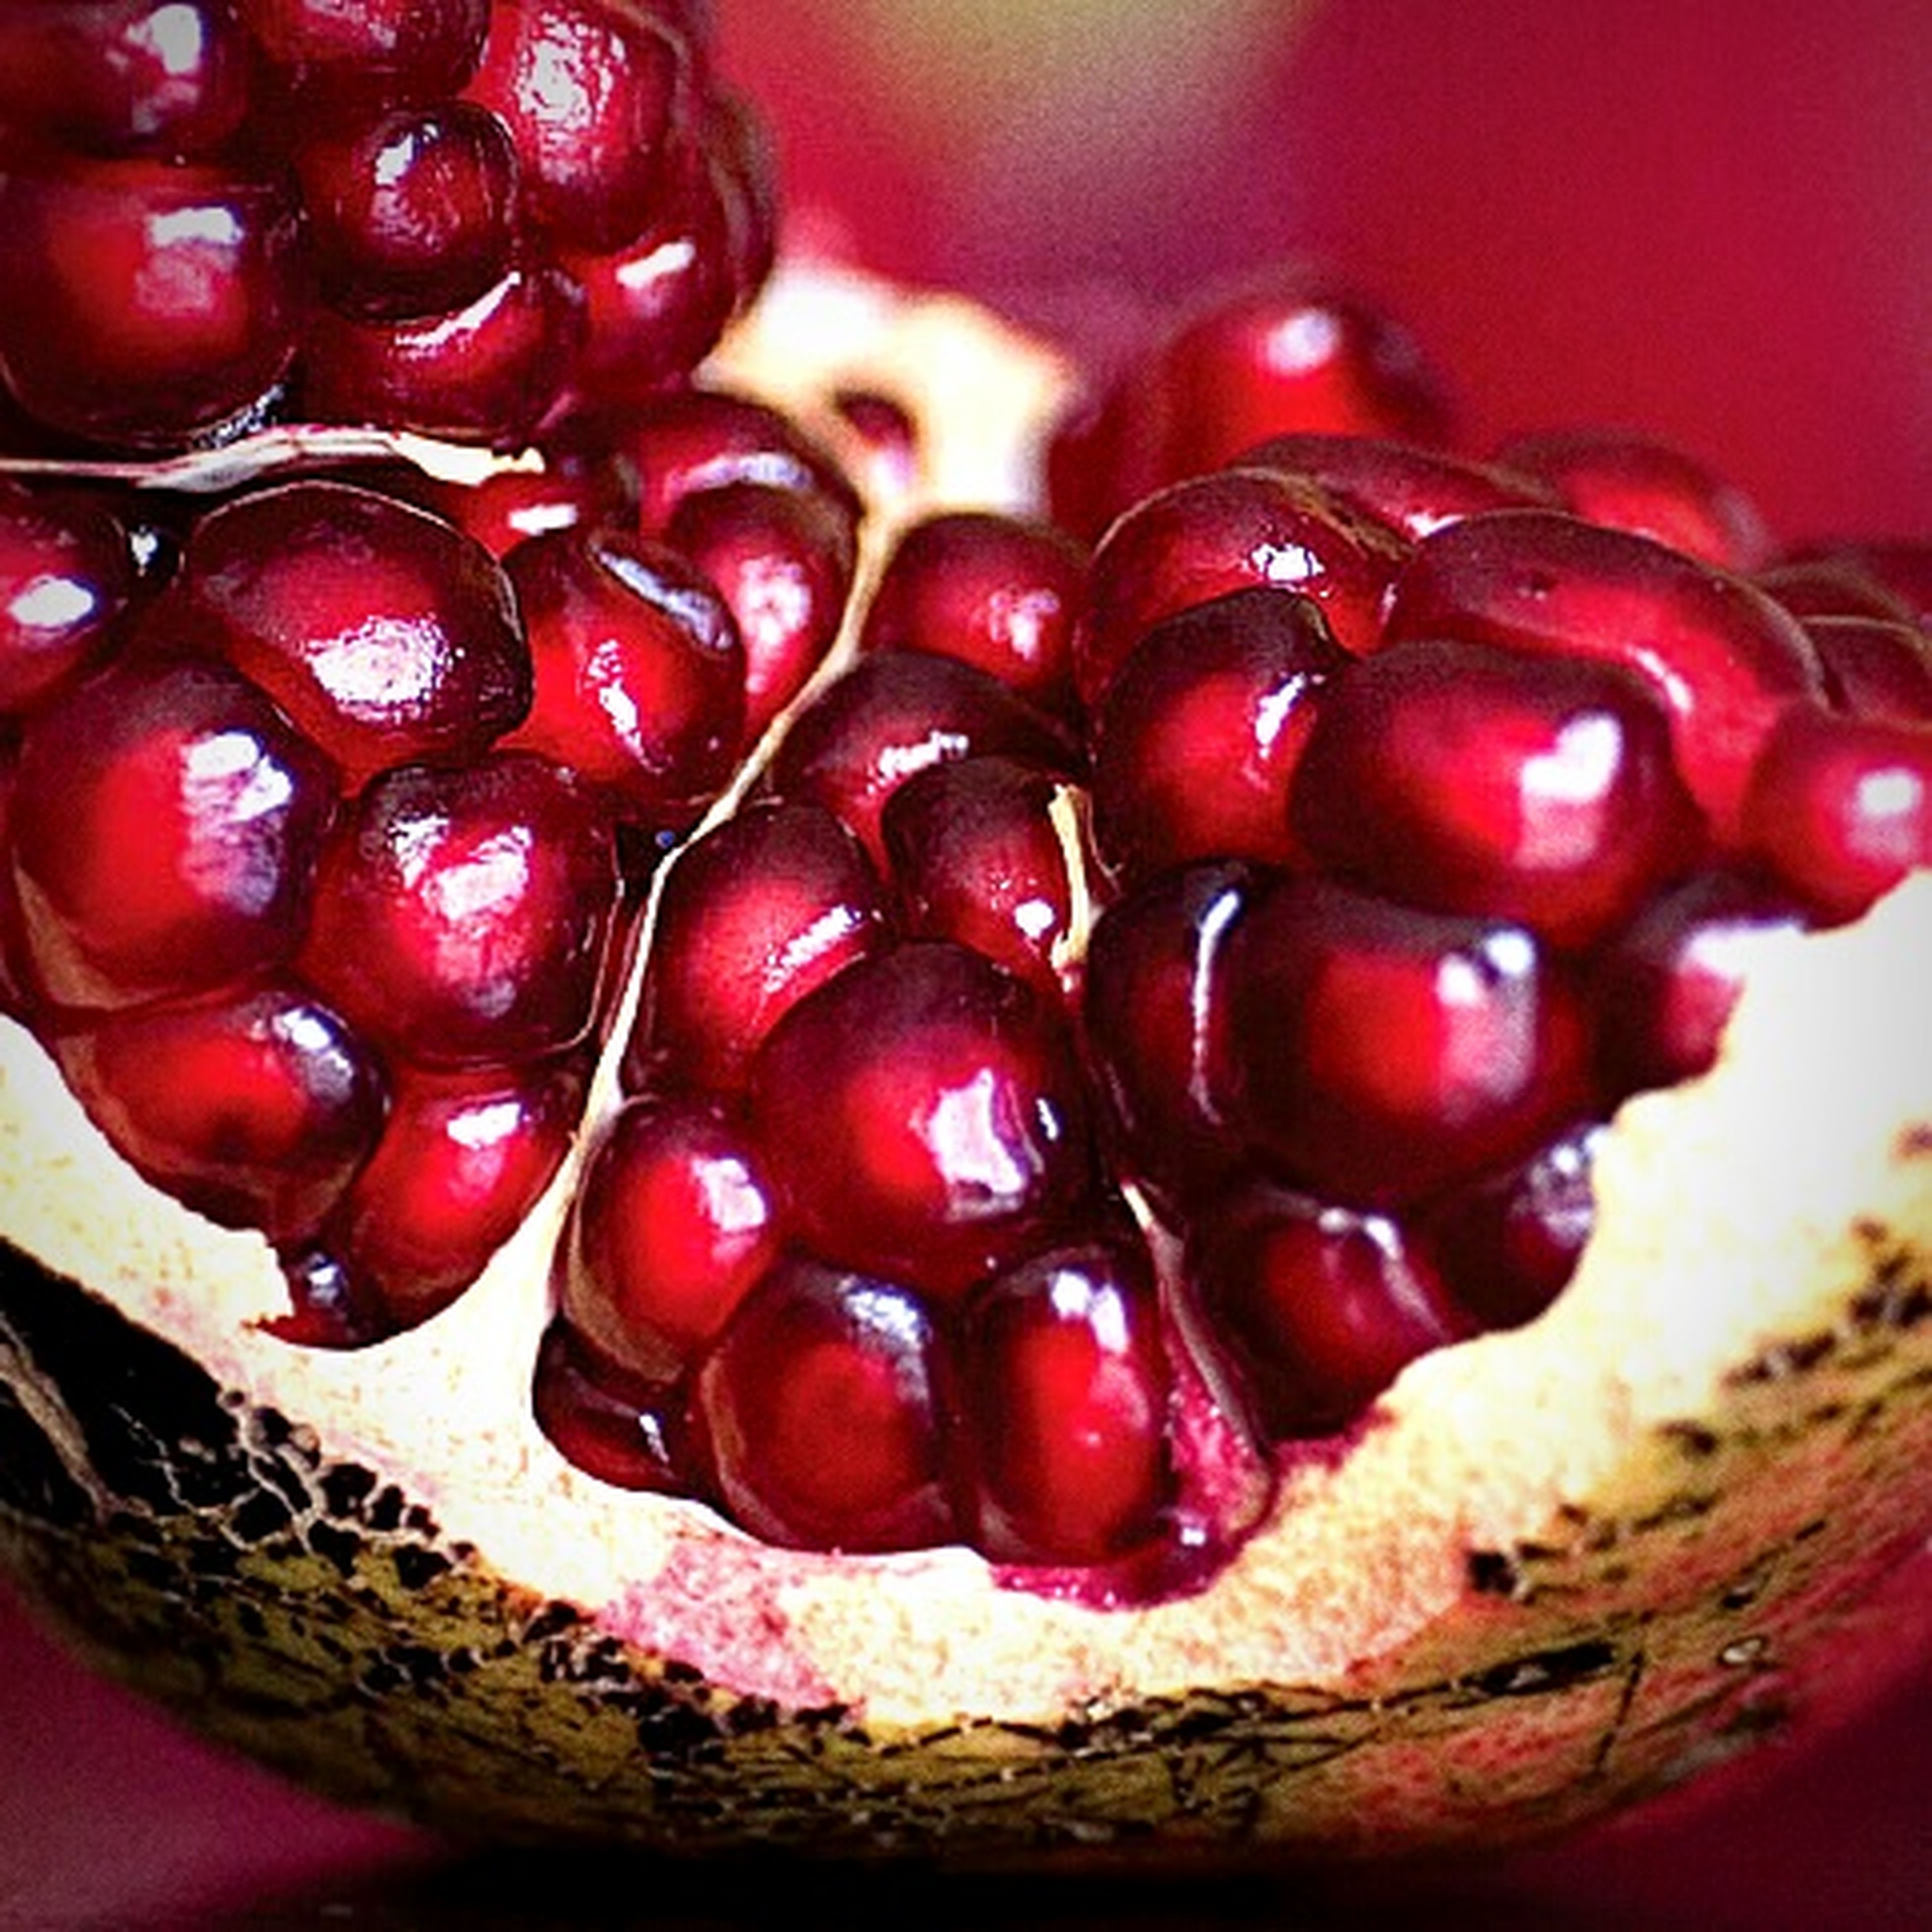 food and drink, food, fruit, red, healthy eating, freshness, indoors, close-up, ripe, strawberry, berry fruit, raspberry, juicy, still life, cherry, pomegranate, berry, blueberry, selective focus, blackberry